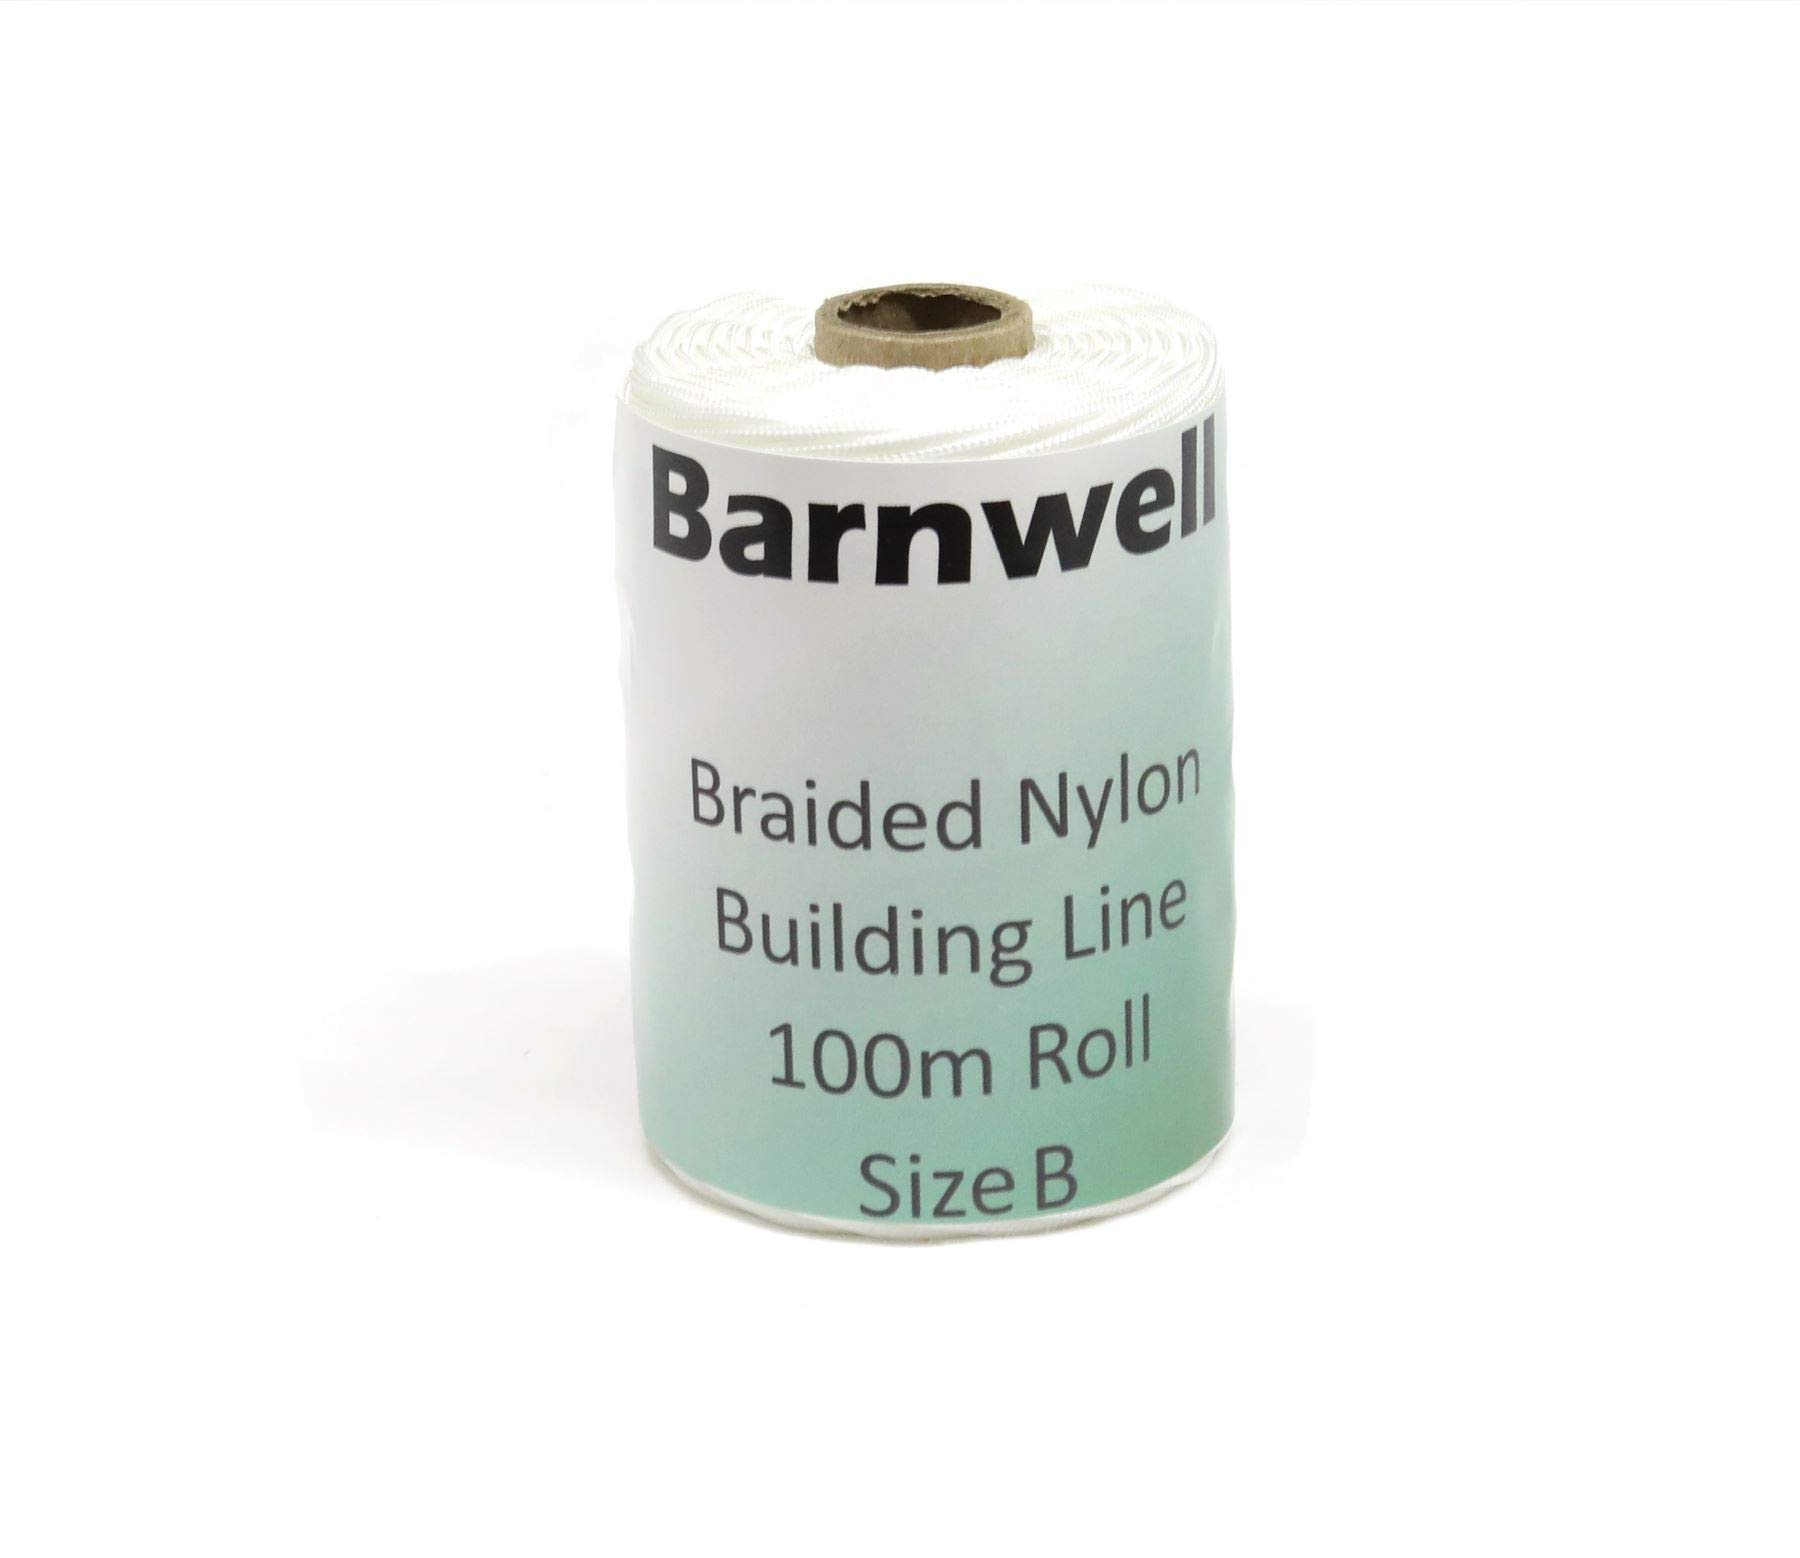 Barnwell Braided Nylon Chalk Brick Building Line 100m (320ft) Roll Size B Thicker ... by Barnwell